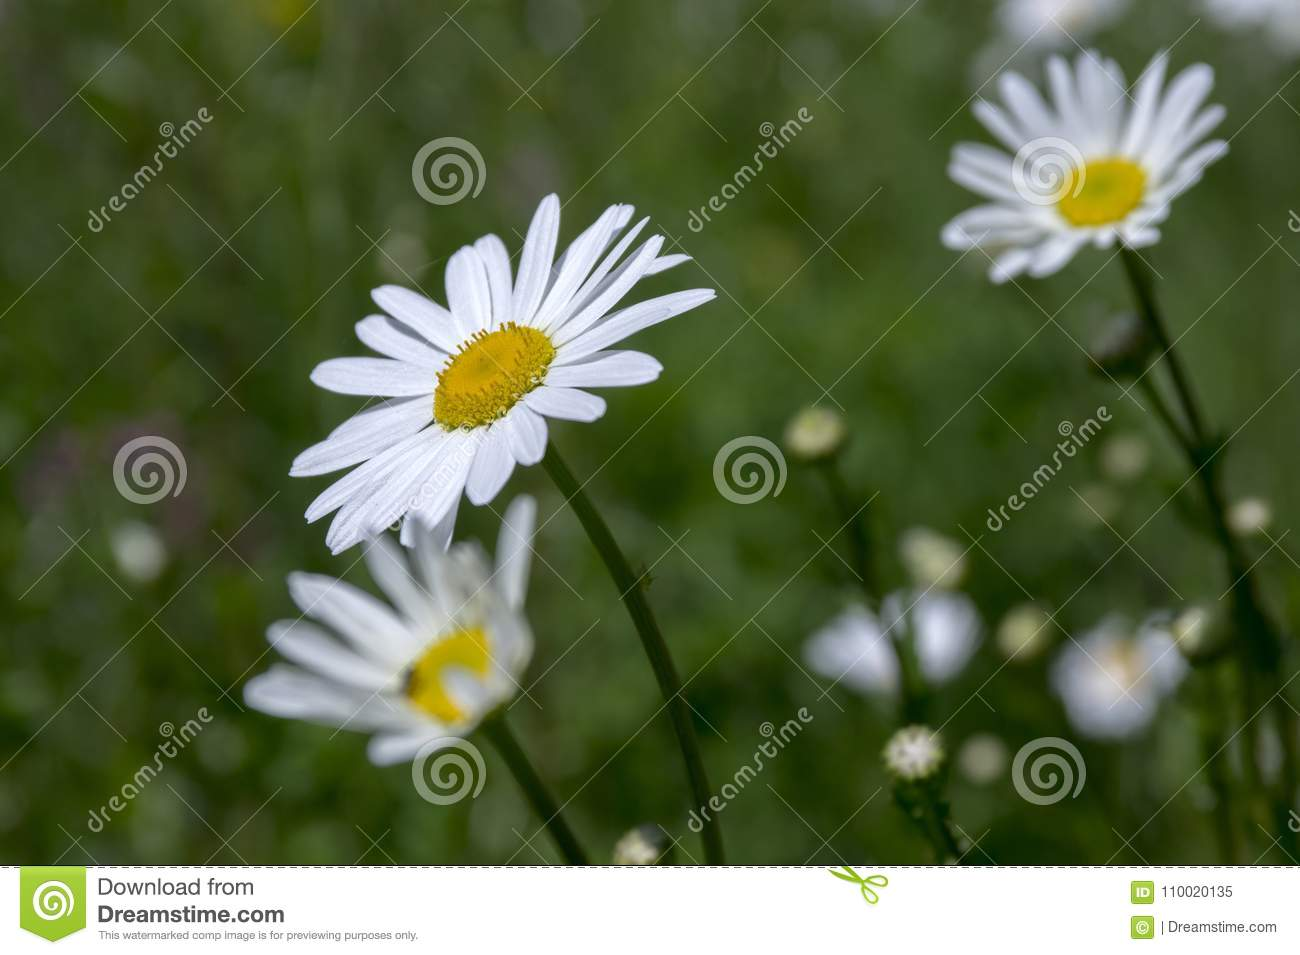 Leucanthemum Vulgare Meadows Wild Flower With White Petals And